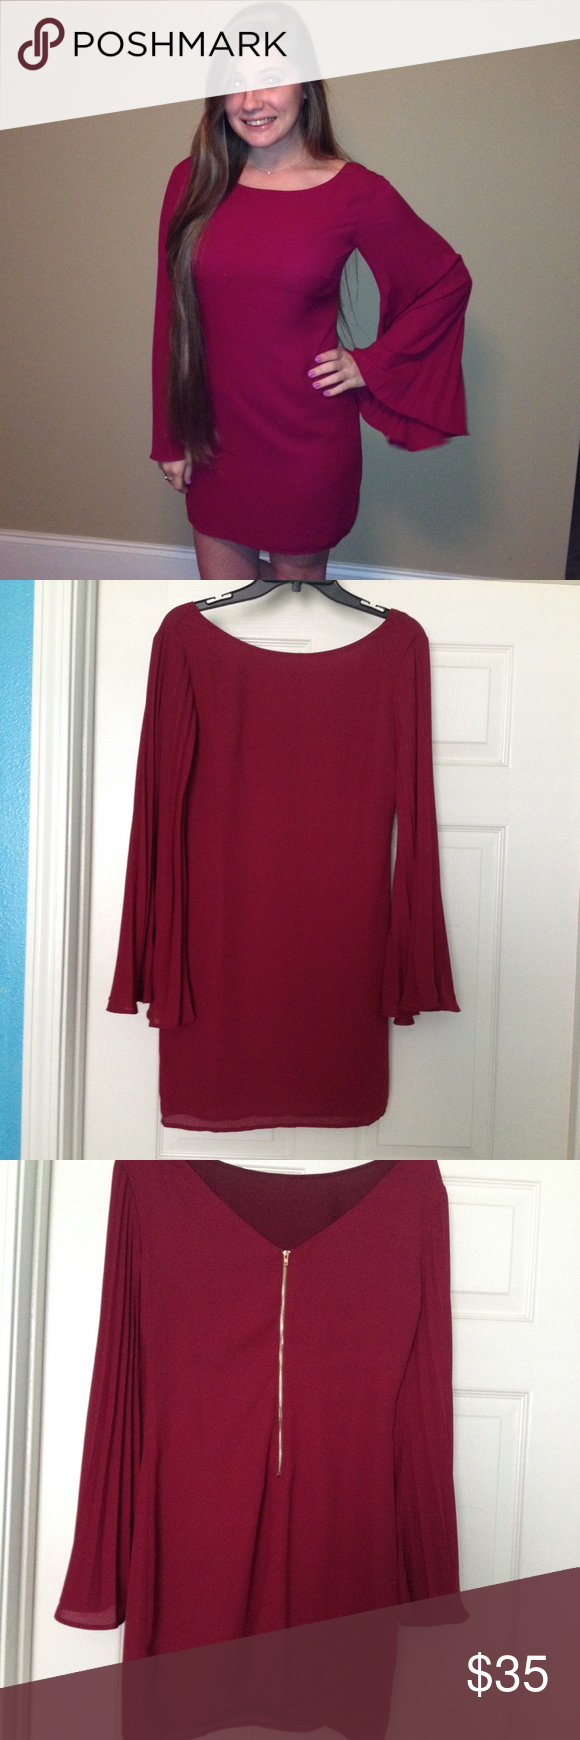 Gianni Bini Shift Dress Gorgeous burgundy wine colored shift dress by Gianni Bini. Features pleated long sleeves that flare at the end, an exposed golden zipper up the back, and lining underneath. Size XS. I only wore this on one occasion (when the photo was taken) and it is in very good condition. Great to wear to any formal events, weddings, graduations etc. Gianni Bini Dresses Long Sleeve